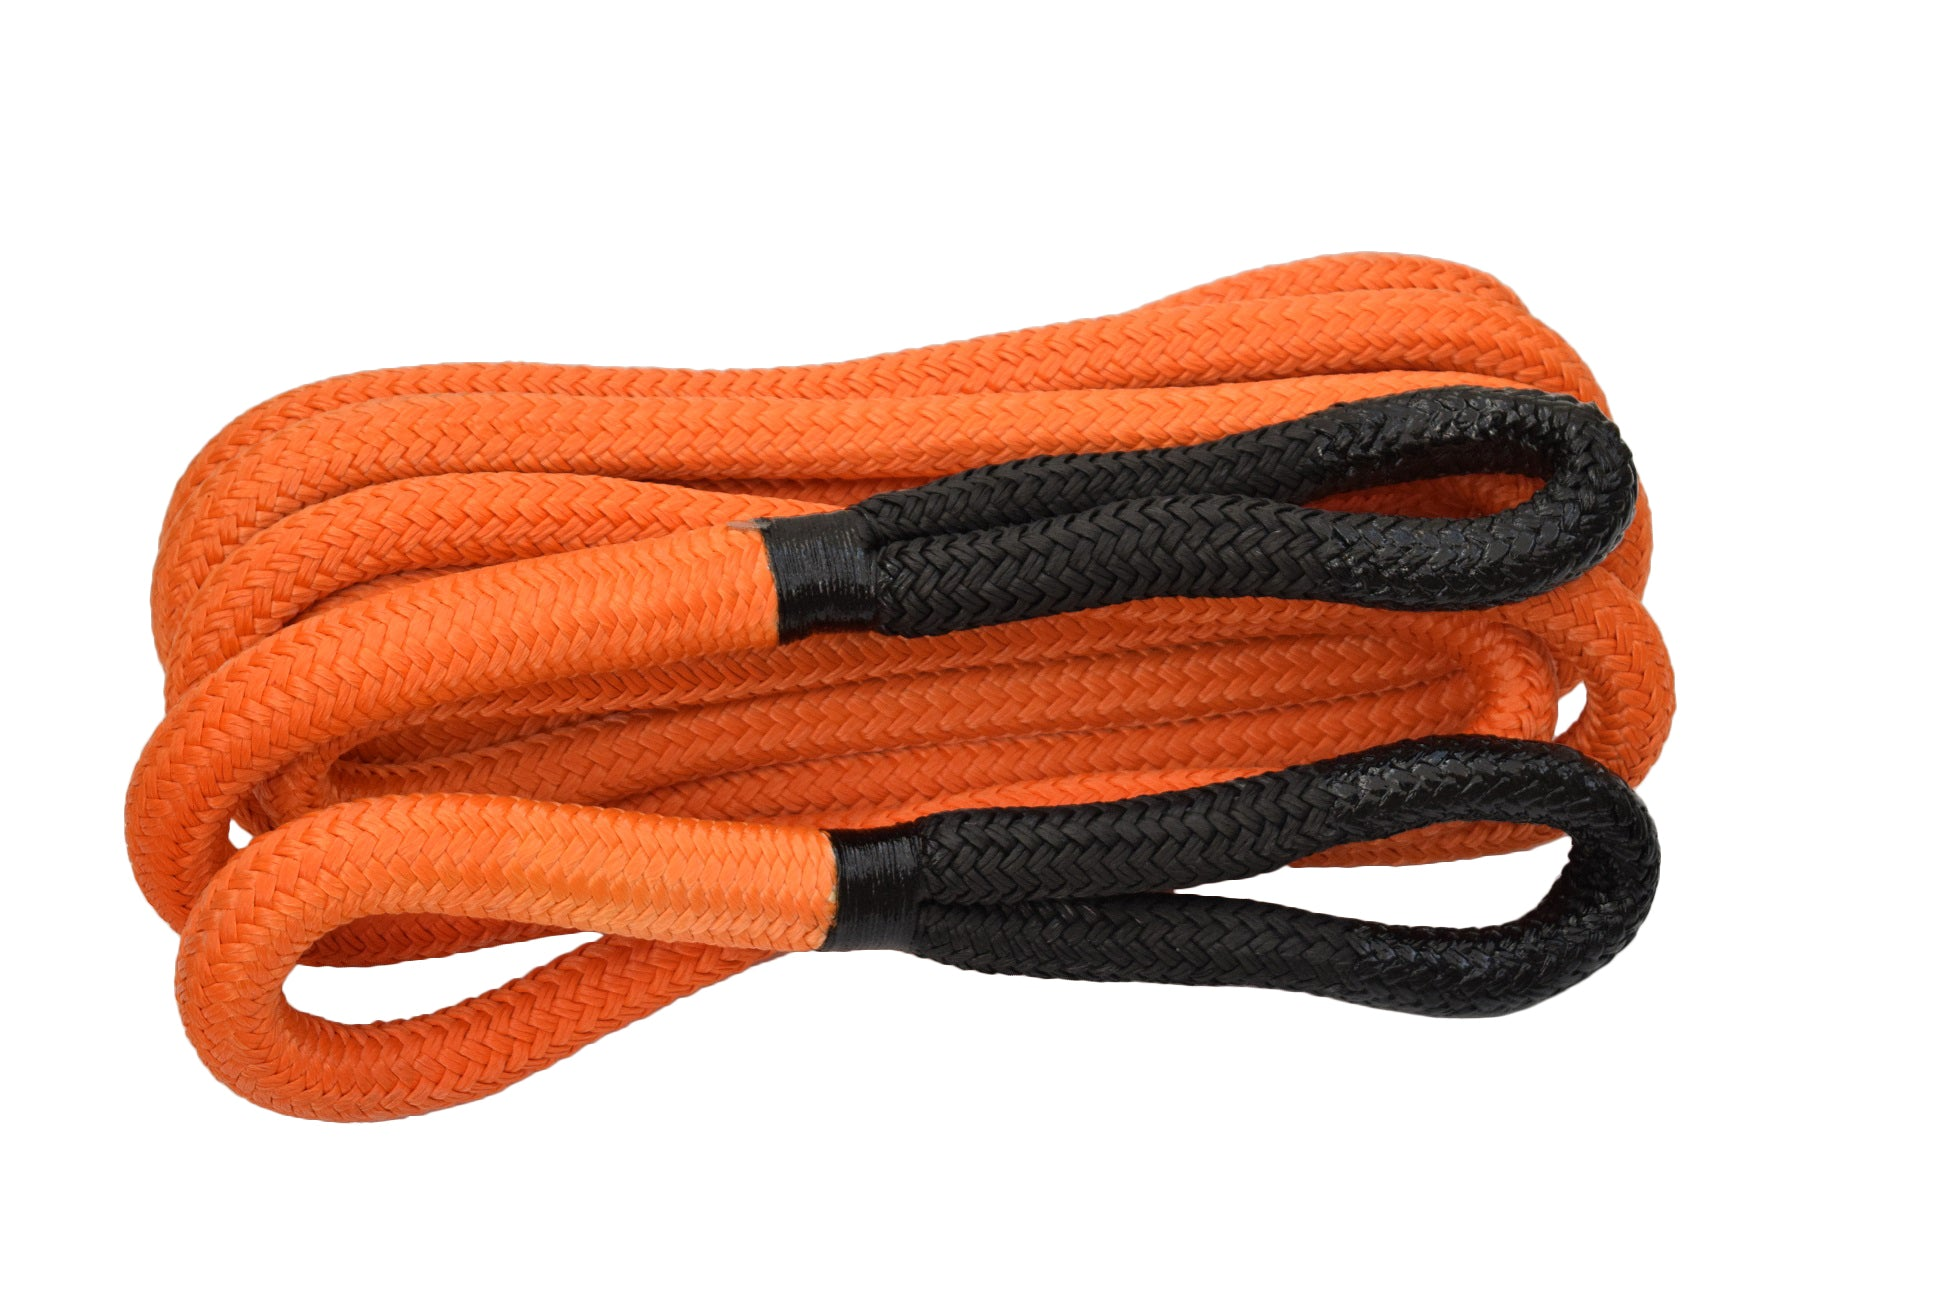 1''x20' QIQU Kinetic Energy Recovery Rope (33500lb)